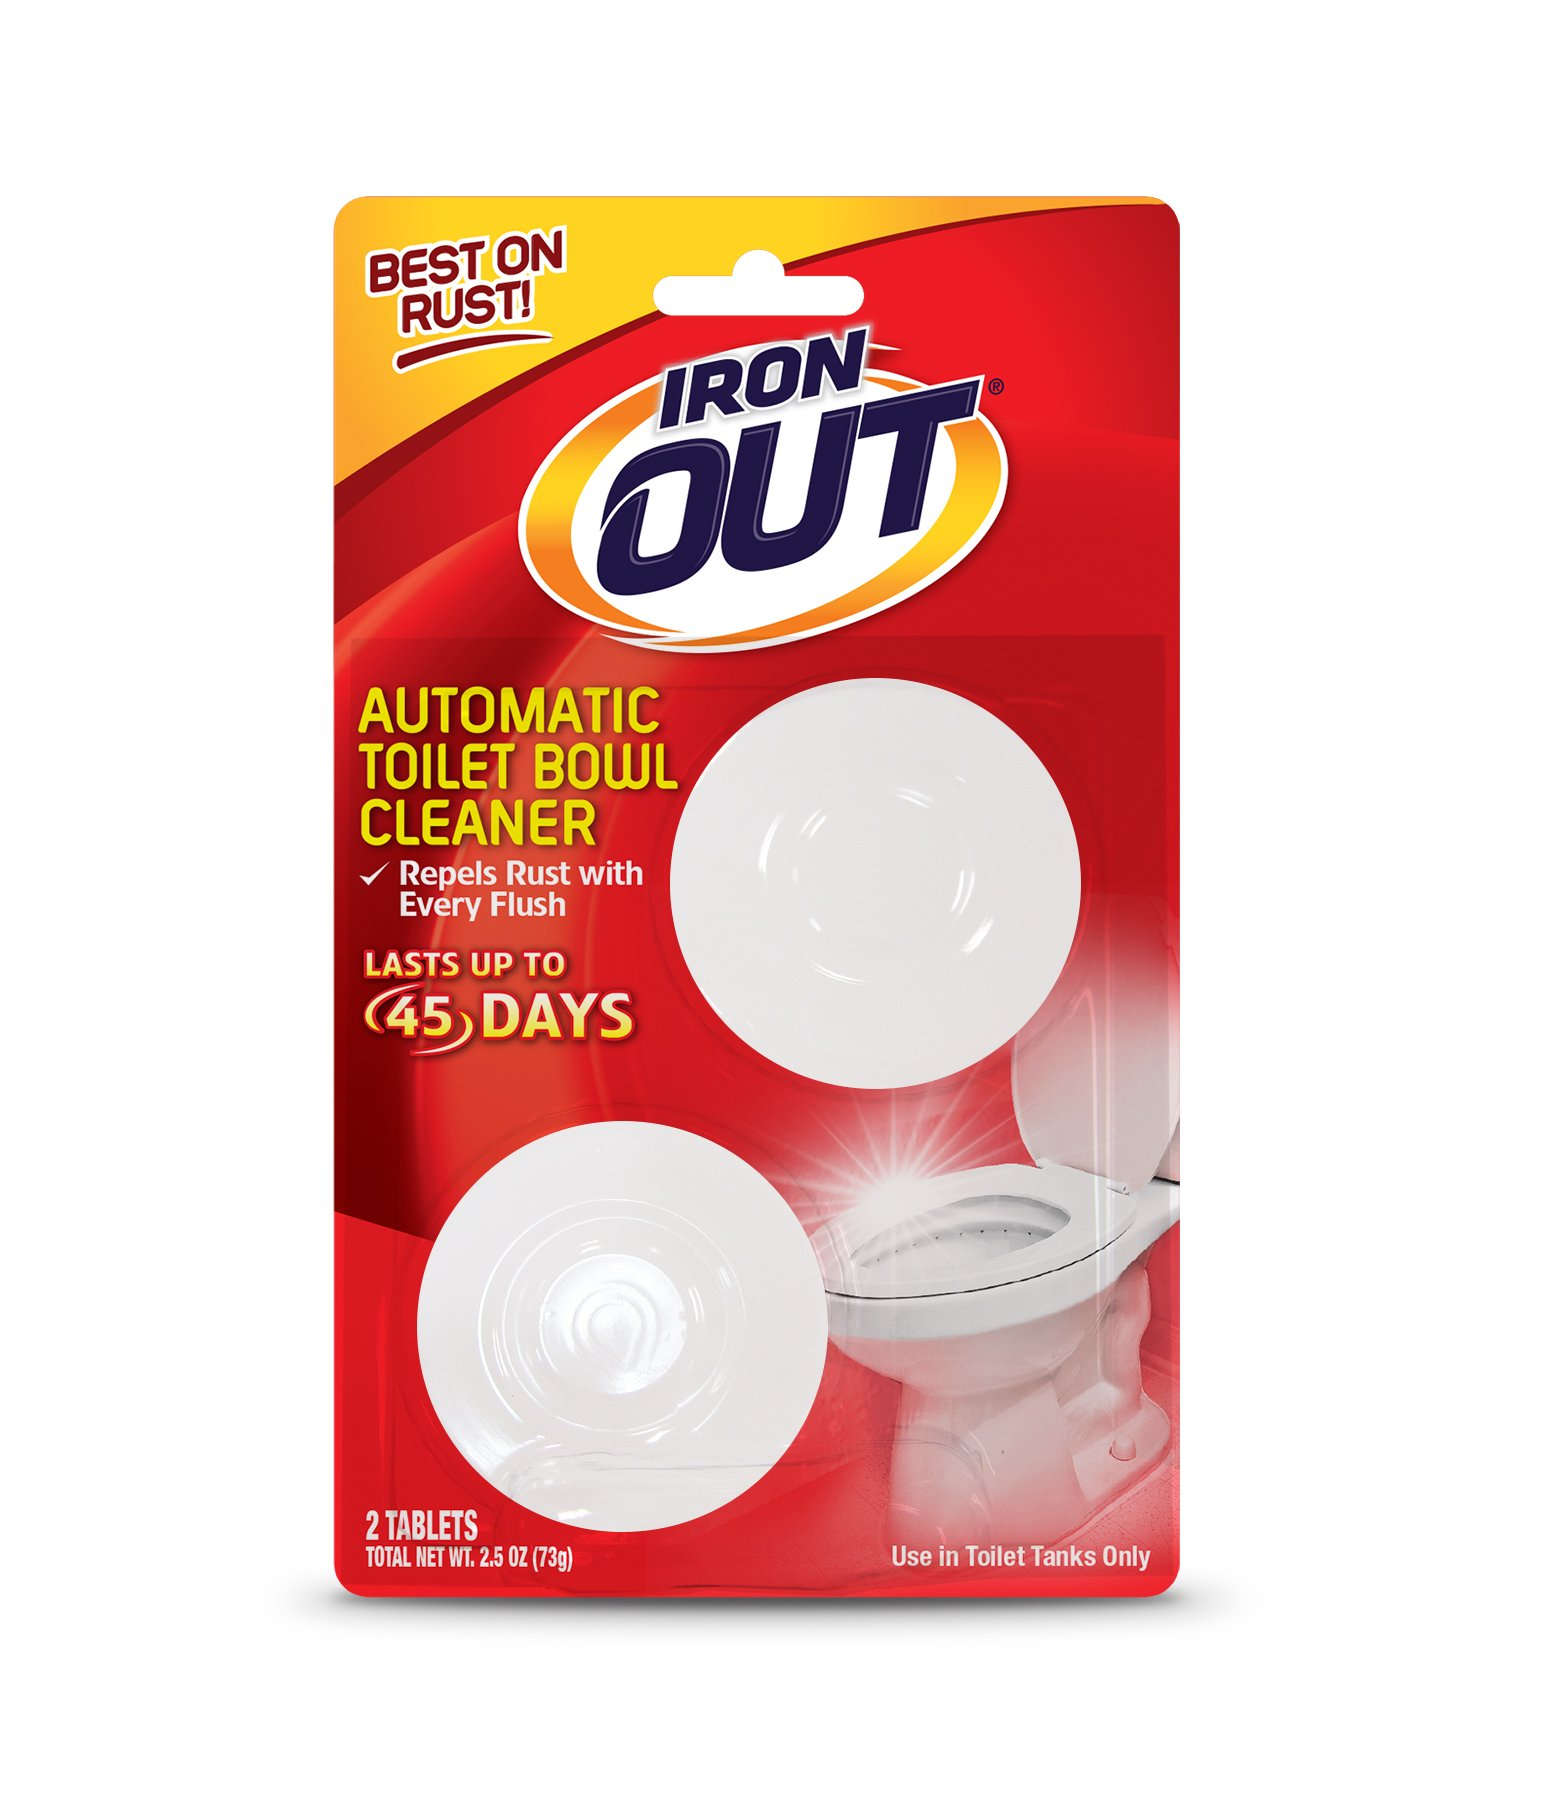 Iron OUT Automatic Toilet Bowl Cleaner, 6 pack, 24 Tablets by Summit Brands